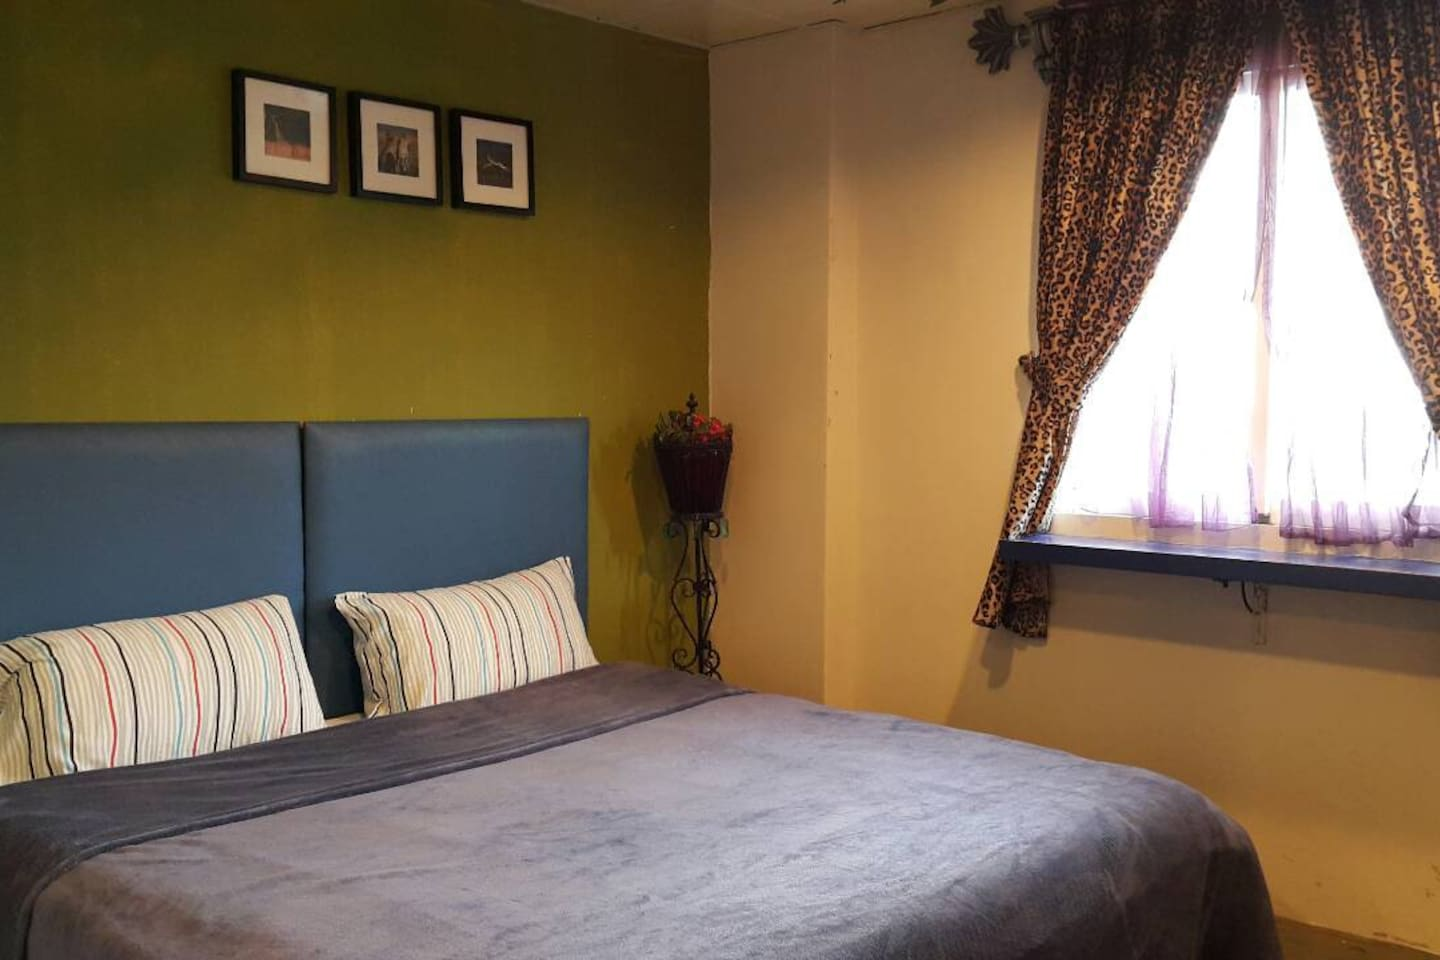 203 Luxury double room(with 1 large double bed)